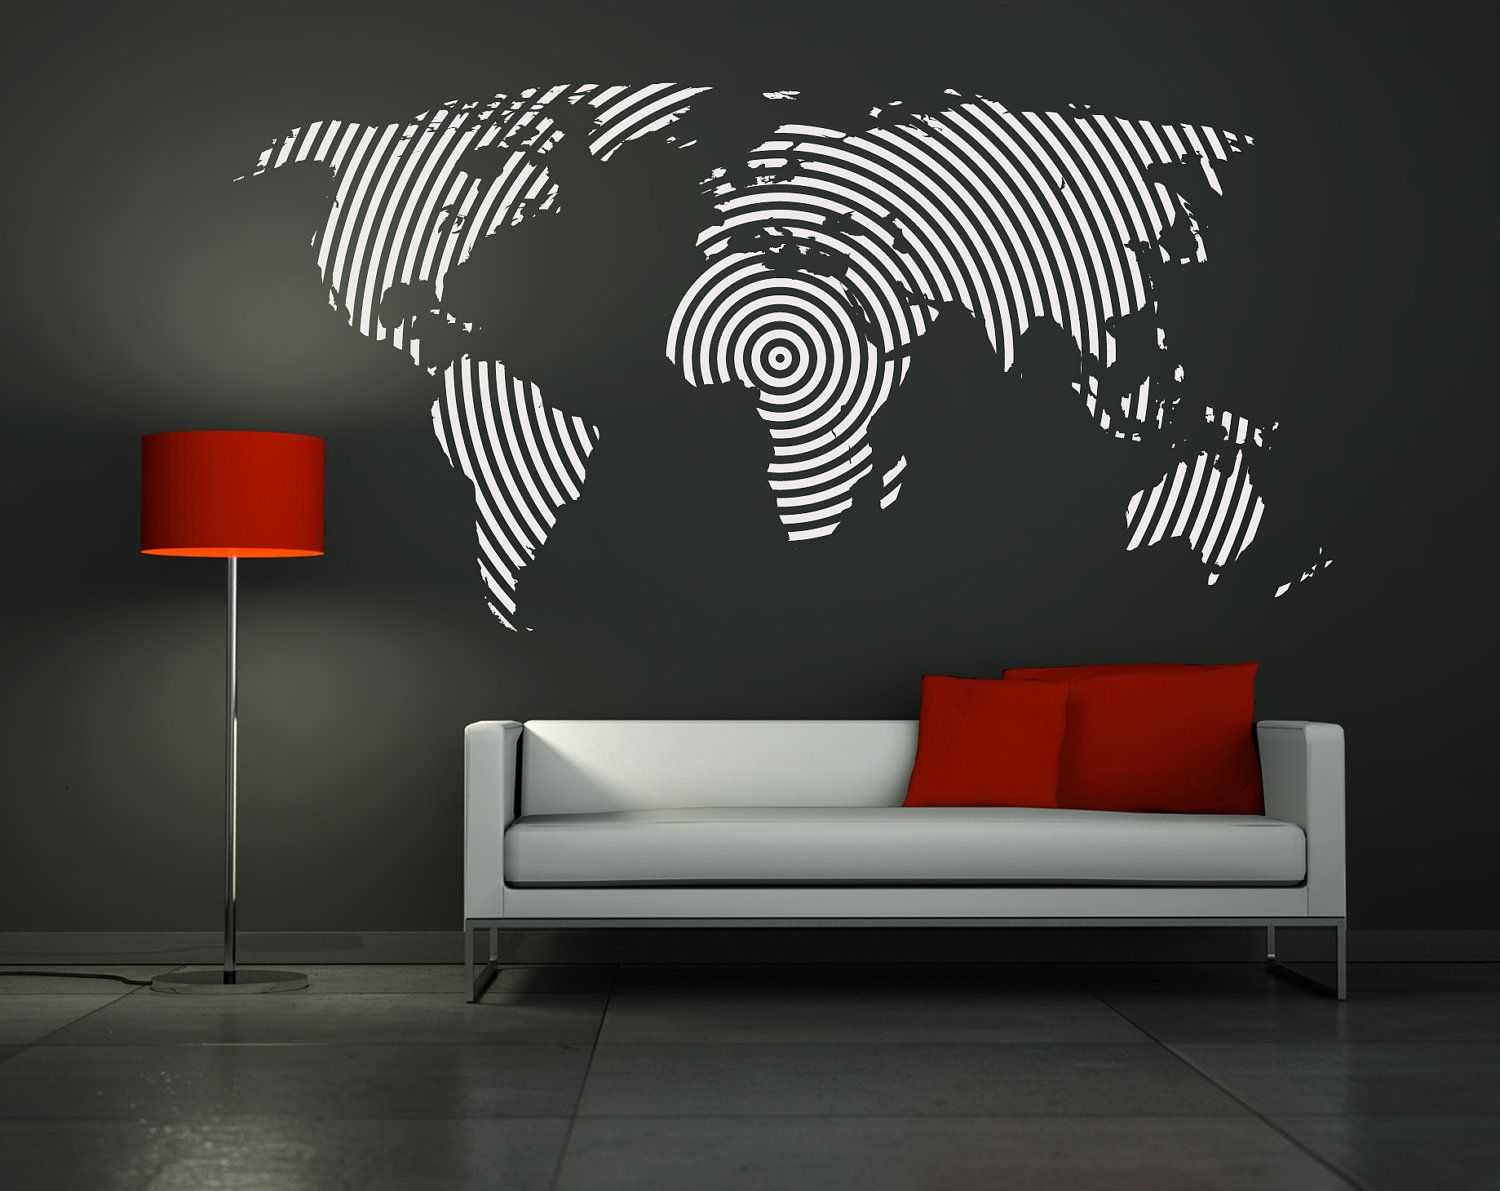 wall decal vinyl sticker home decor modern art mural  big world  - wall decal vinyl sticker home decor modern art mural  big world map '